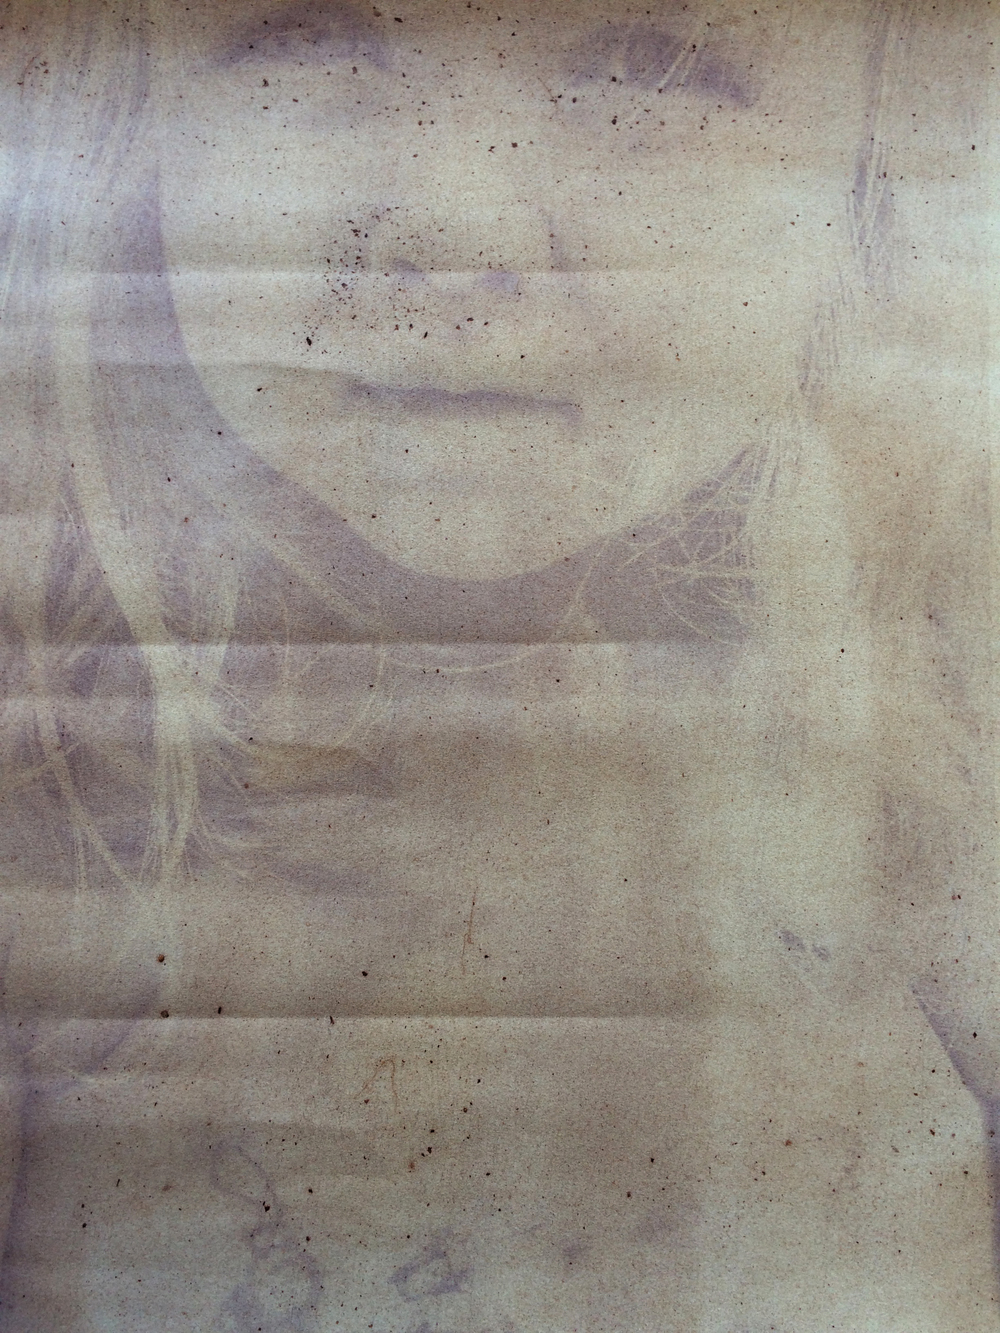 Eve, Mulberry emulsion anthotype, 2015